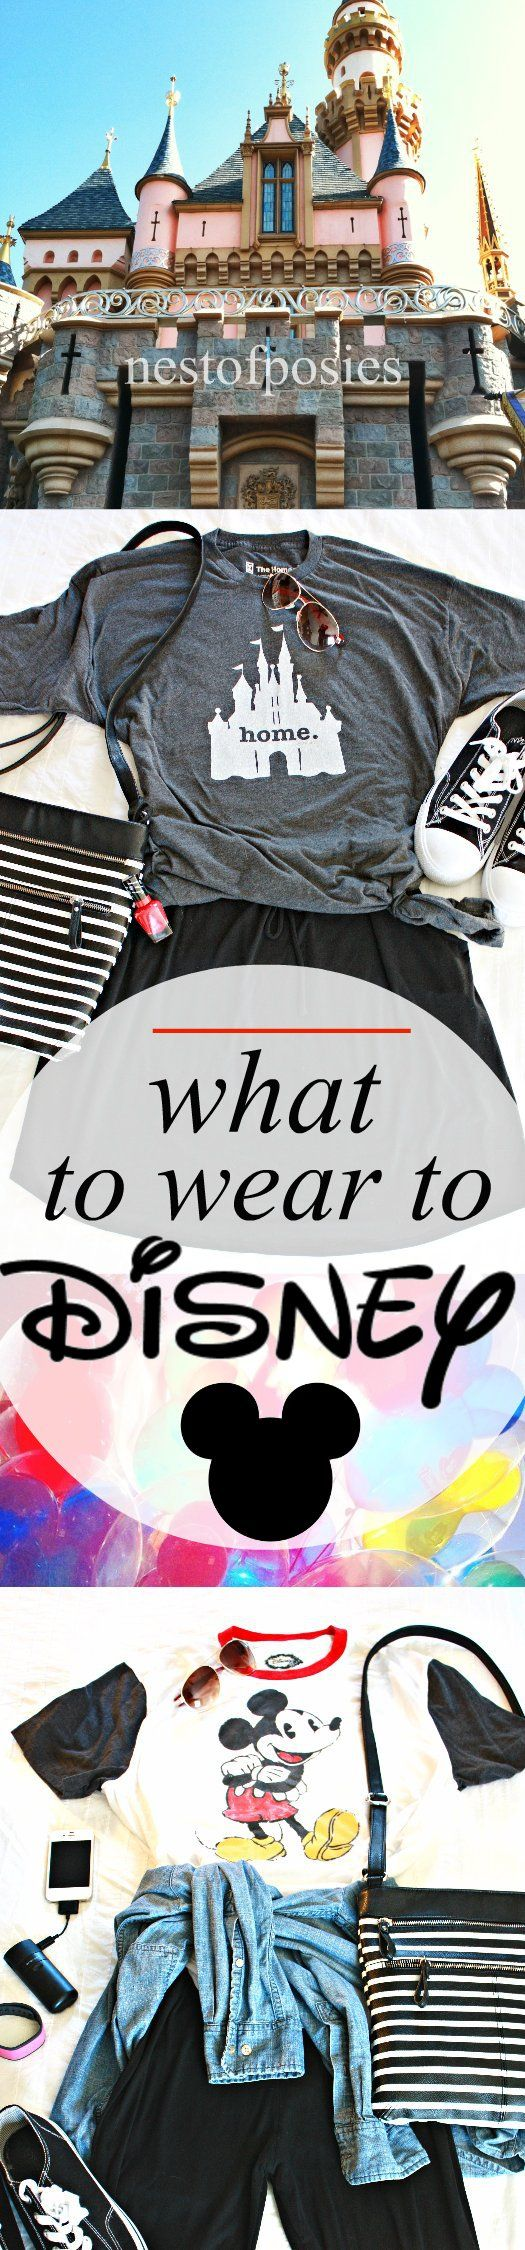 What to wear to Disney